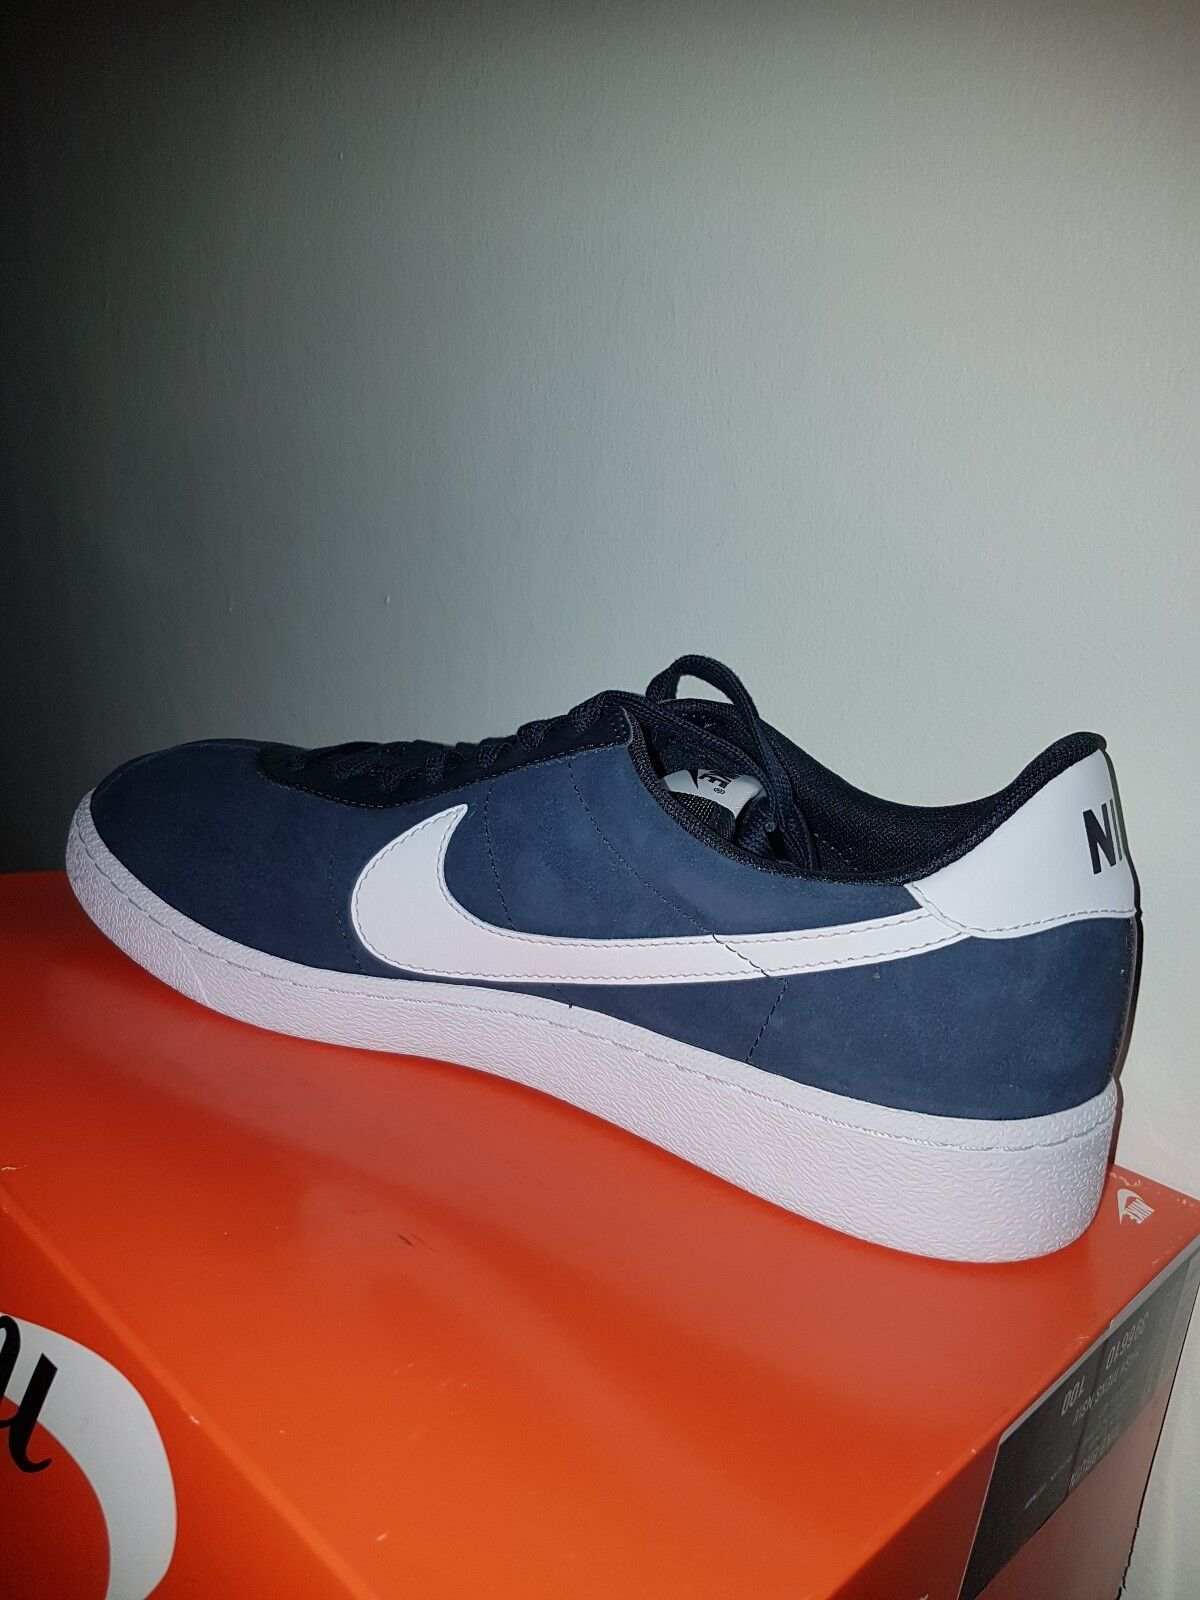 New In Box Nike SB Bruin Hyperfeel Skate Shoes Suede Navy Blue White  Comfortable The latest discount shoes for men and women